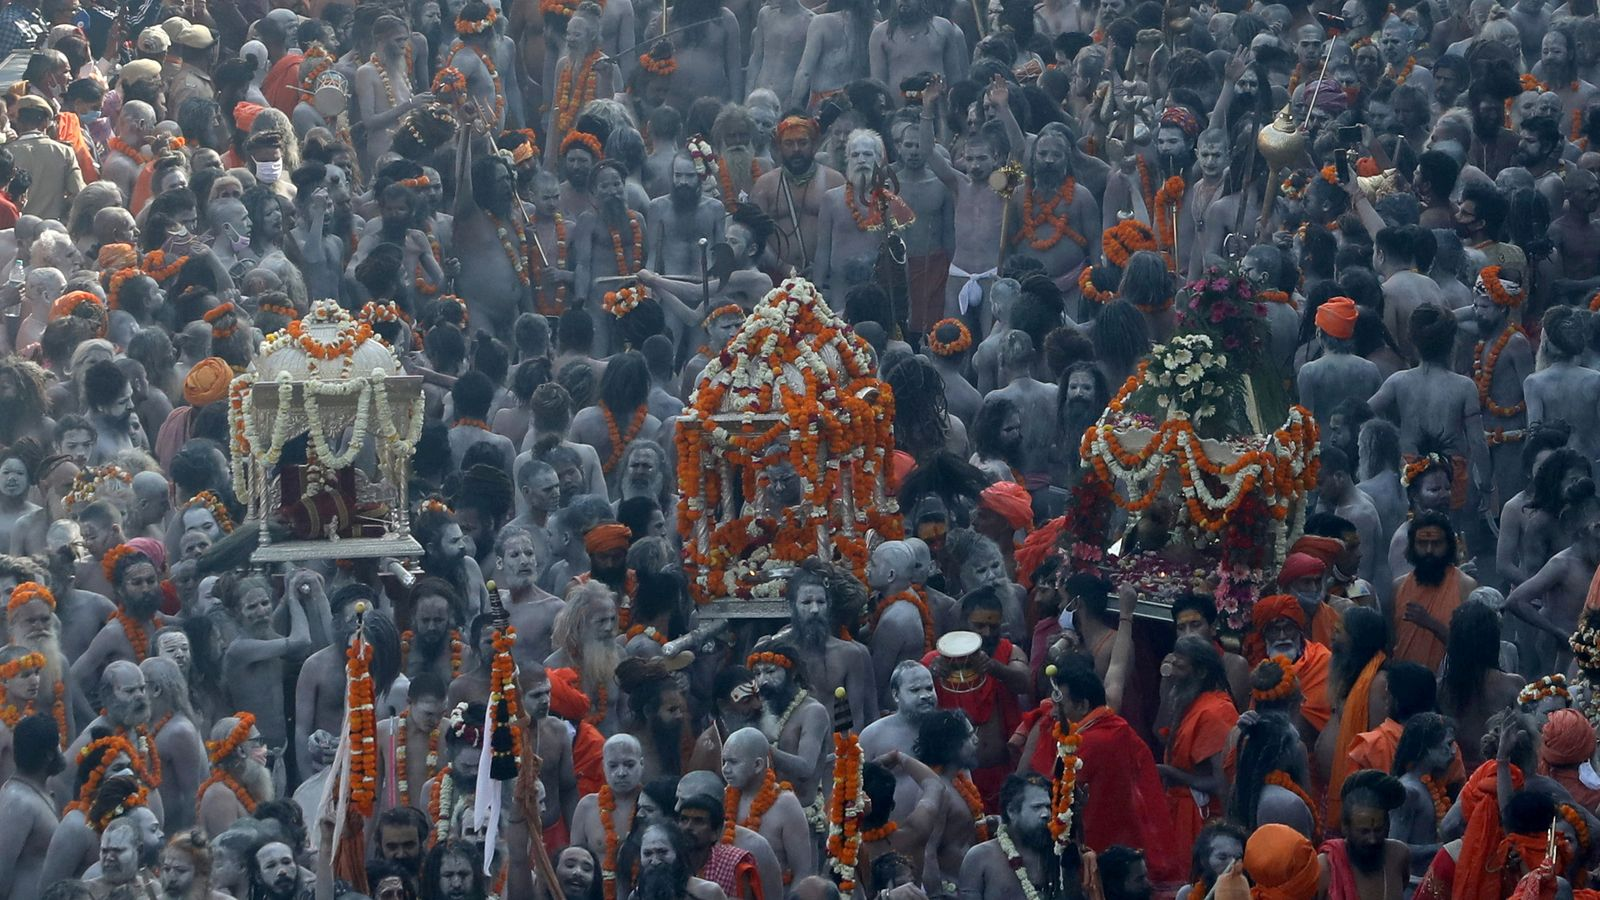 COVID-19: India sees record case numbers as millions of pilgrims flock to Hindu festival